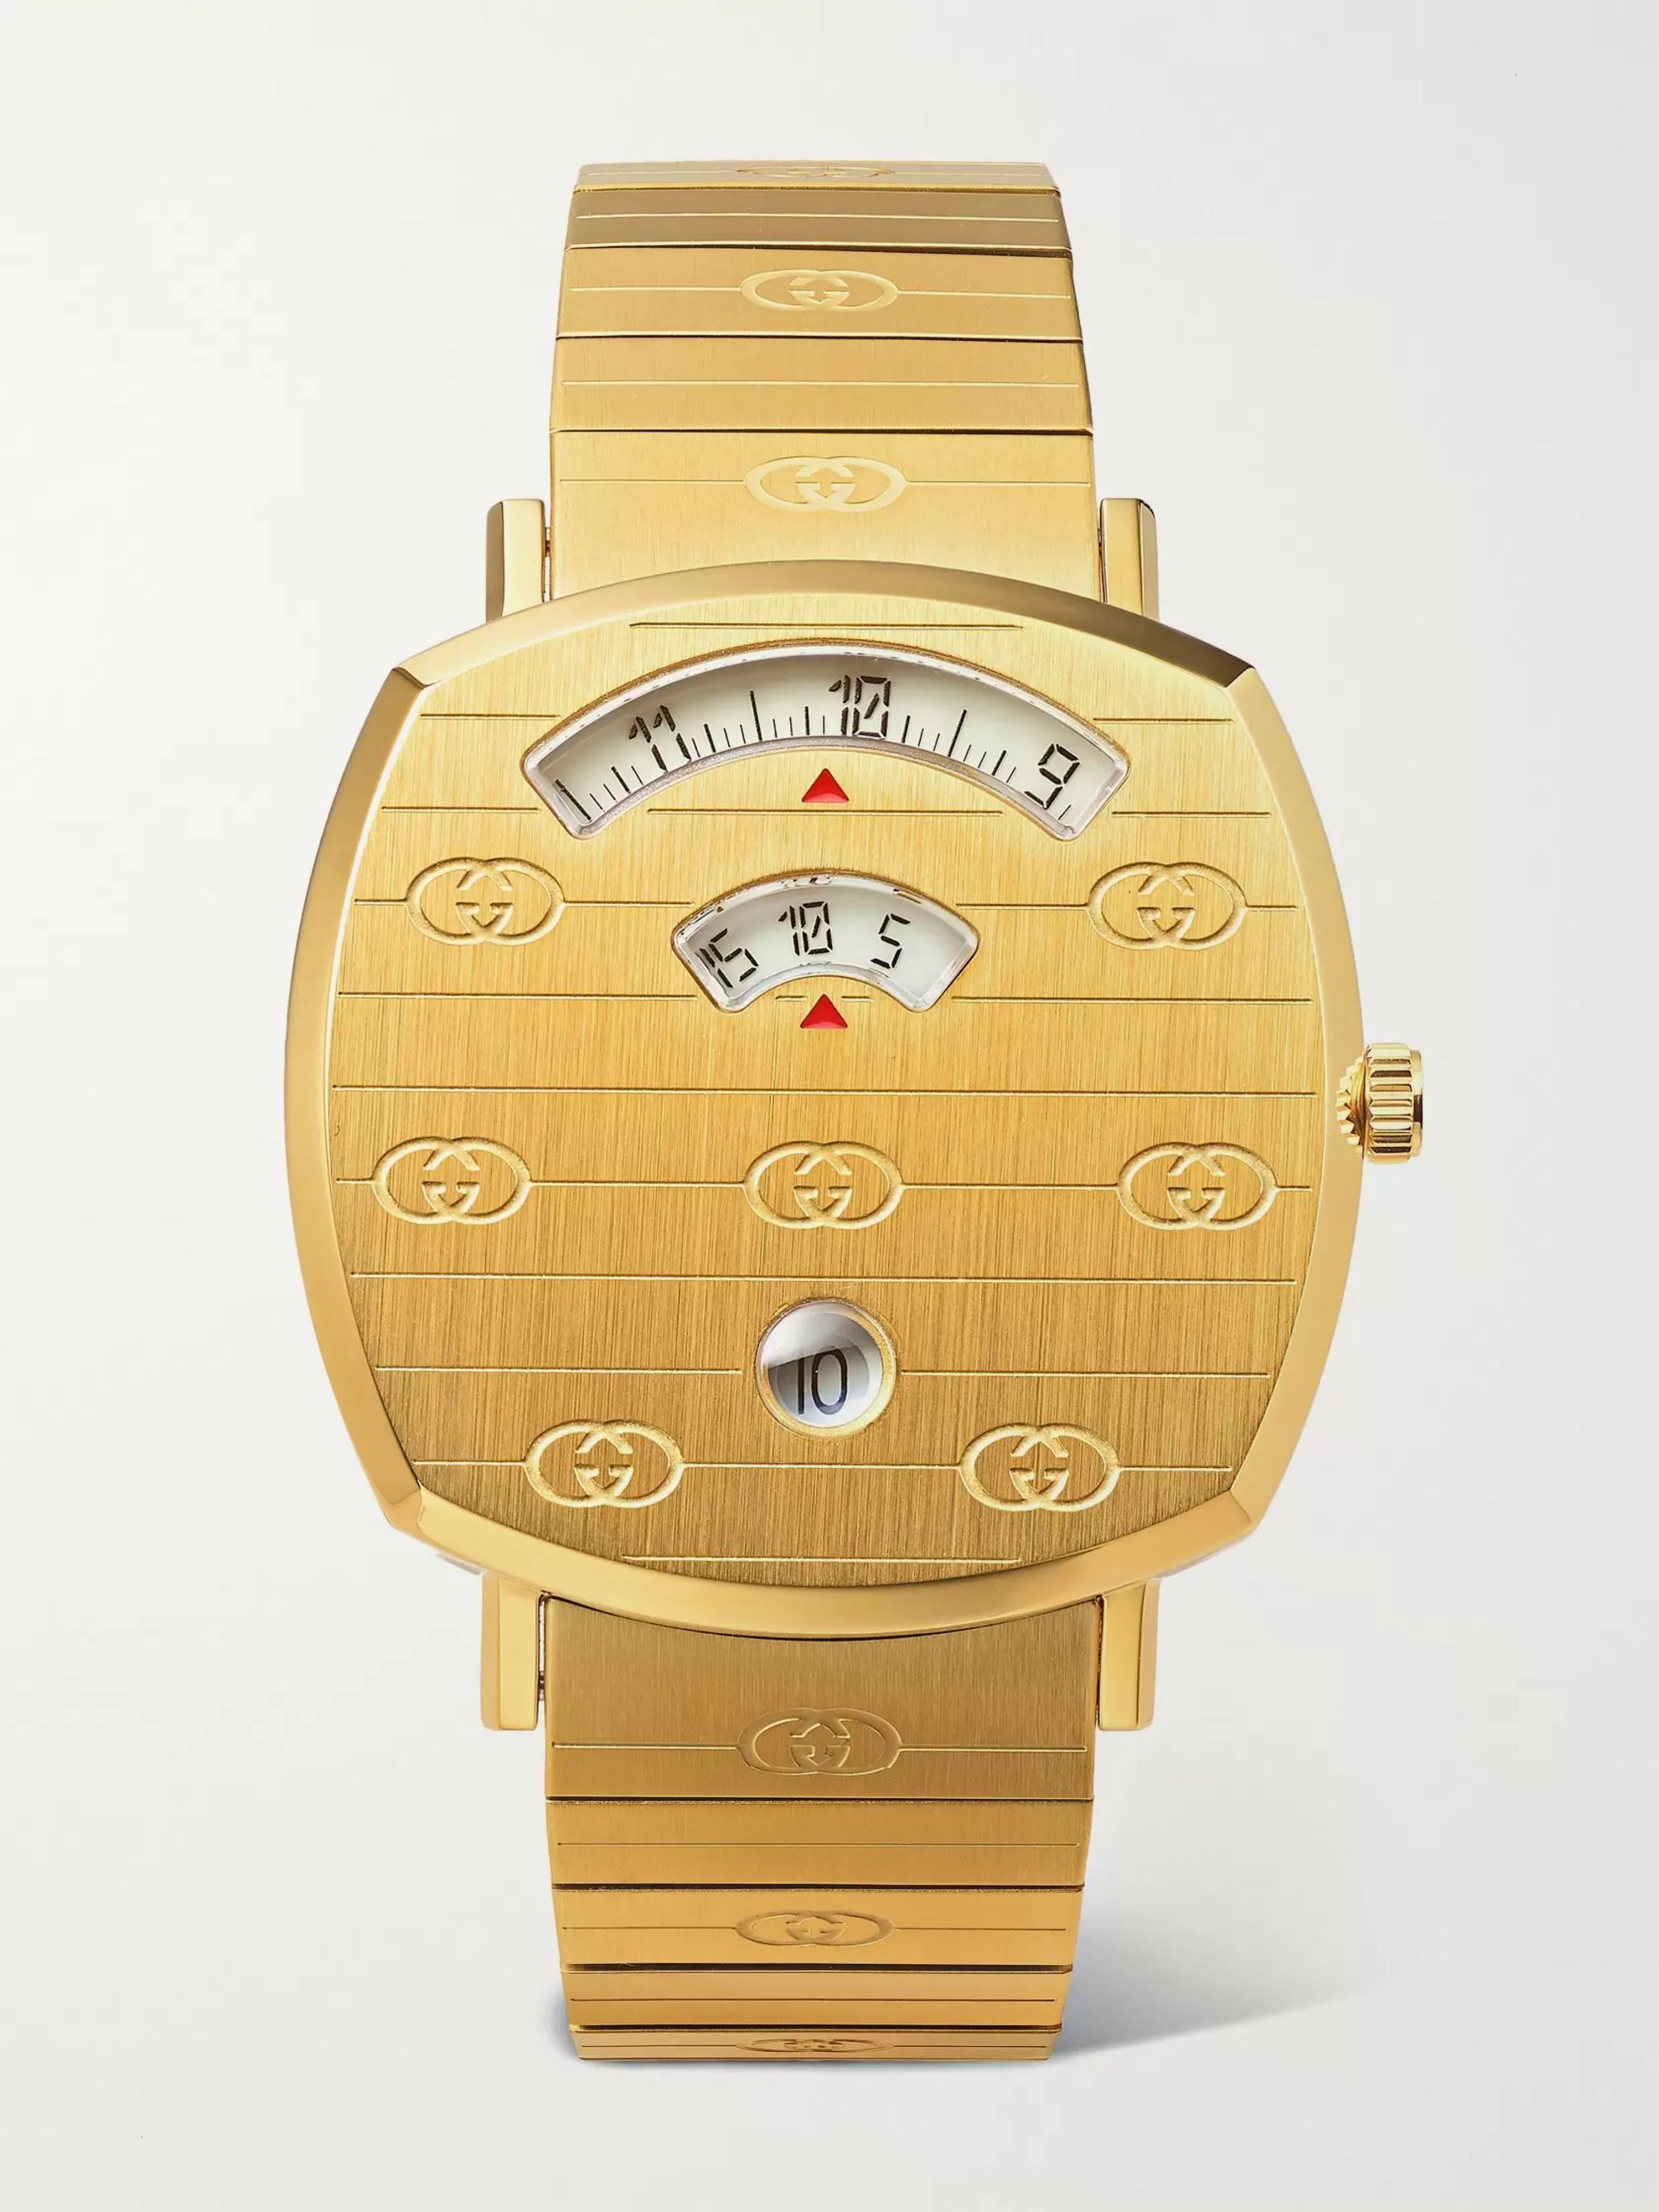 Gucci Grip 38mm Gold-Tone PVD-Coated Watch